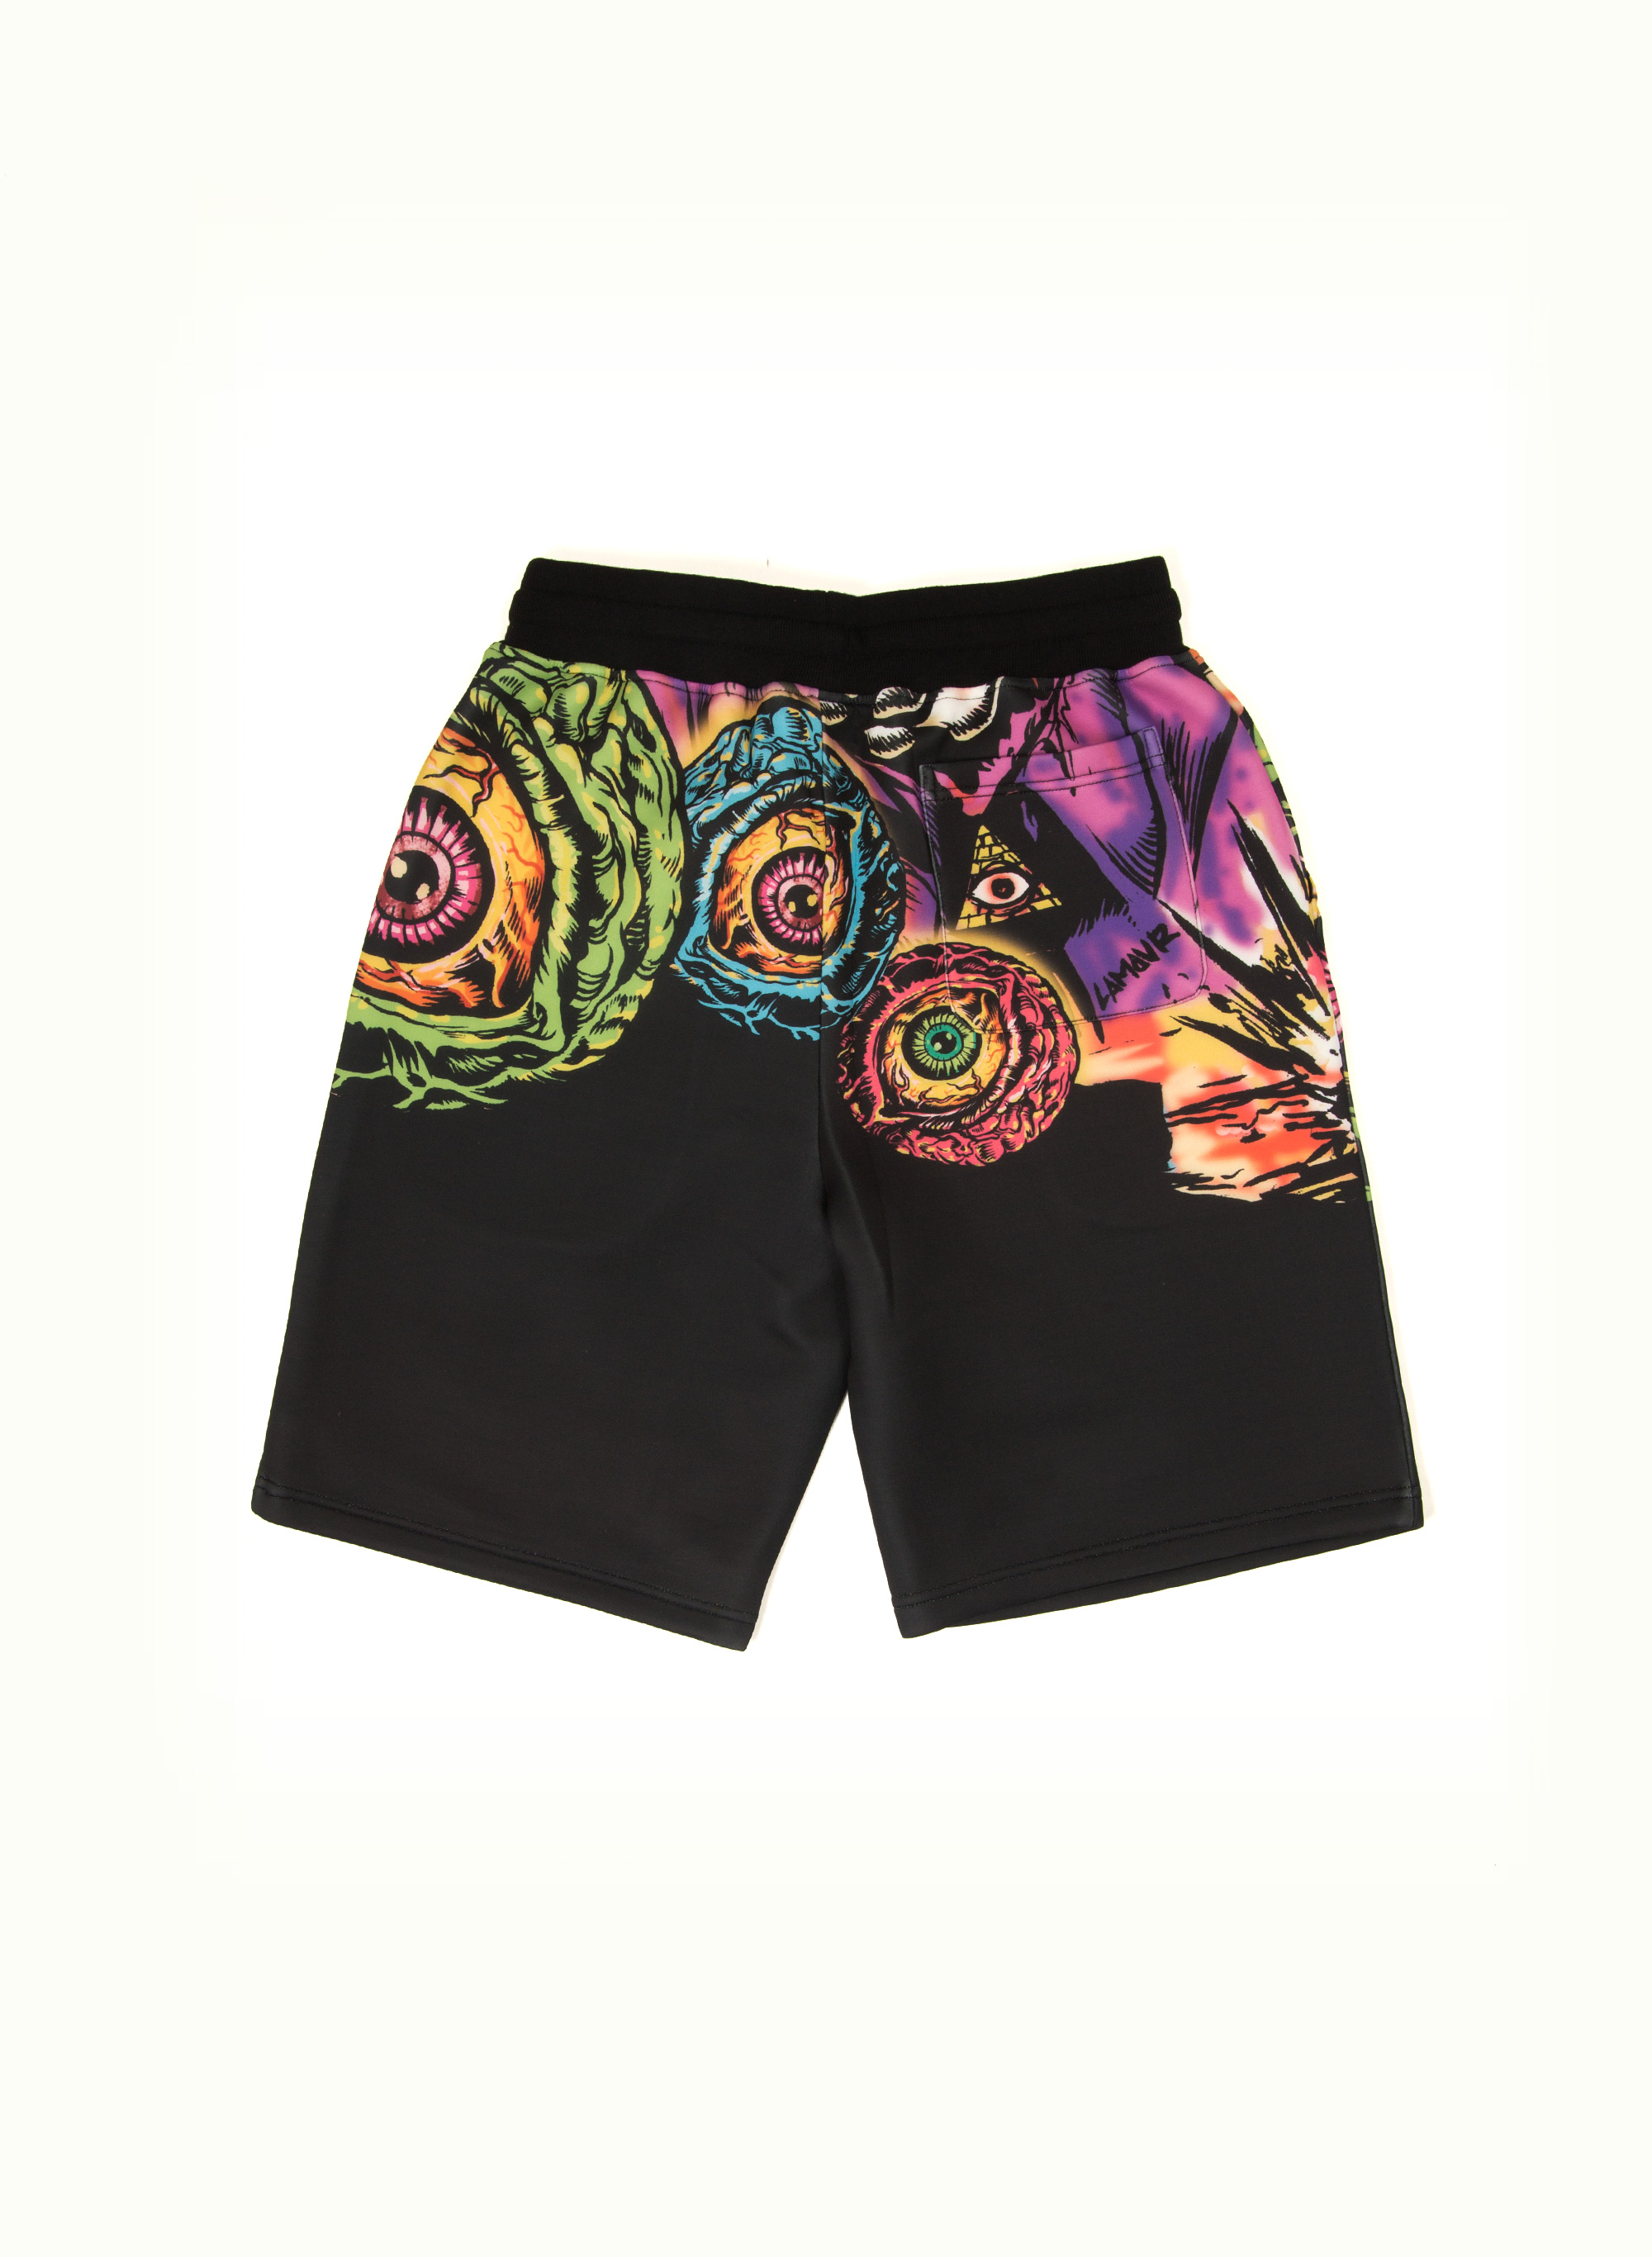 Lamour Espionage Shorts